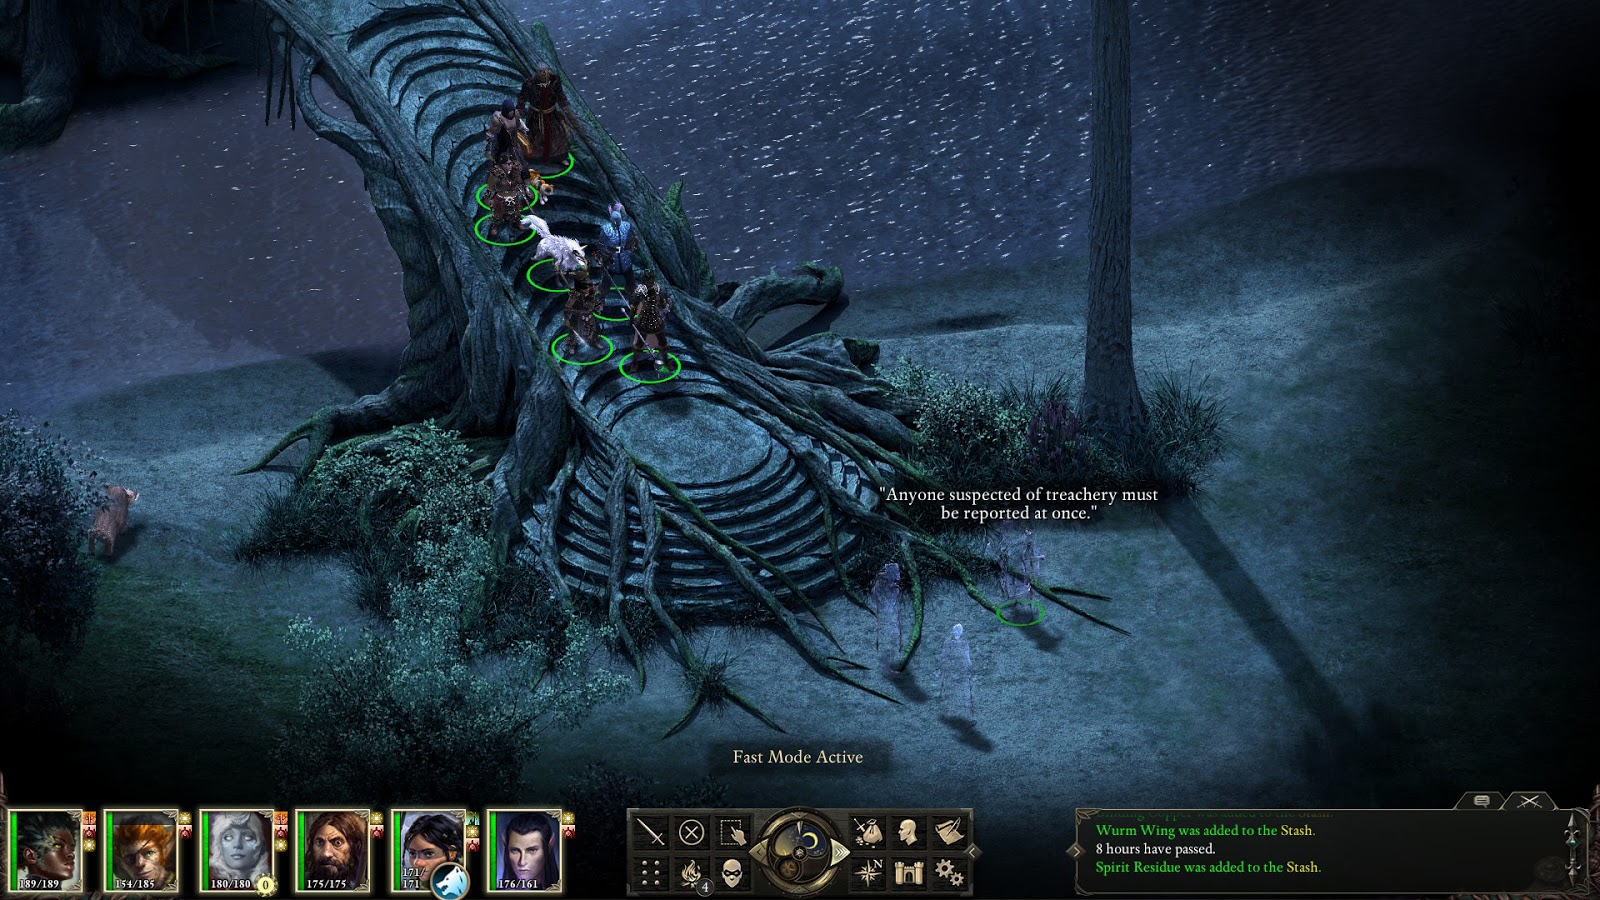 pillars of the earth book report The developers also revealed that ken follett's the pillars of the earth book 3 will release on pc, ps4, and xbox one in may 2018  report abuse contact tech support  ken follett's: the .